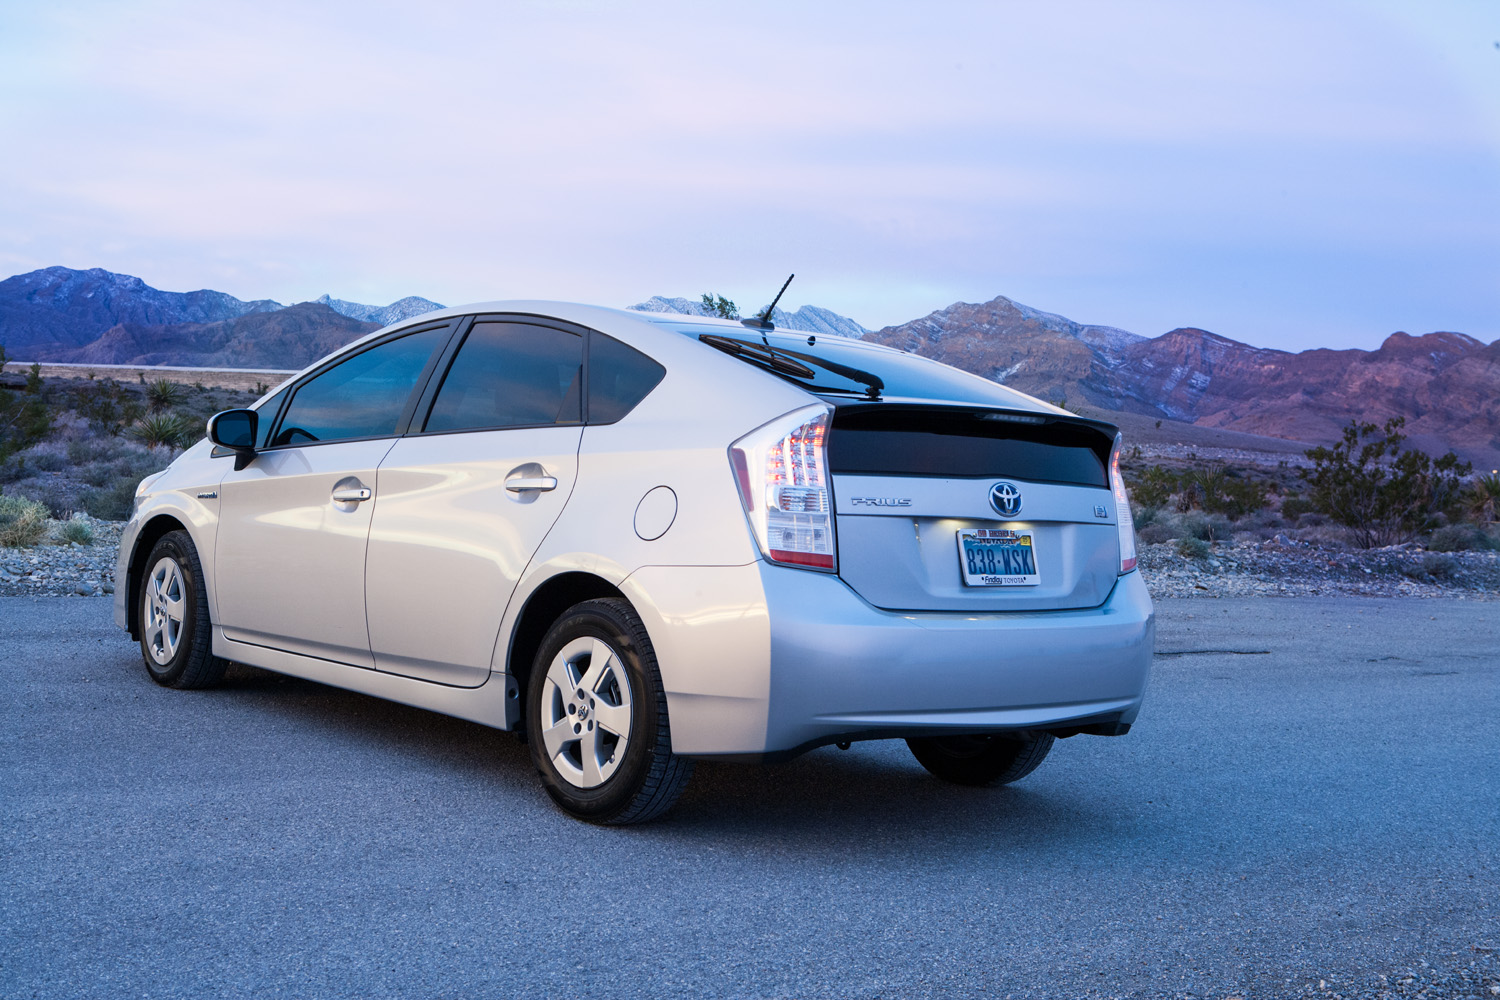 2010 toyota prius pictures cargurus. Black Bedroom Furniture Sets. Home Design Ideas